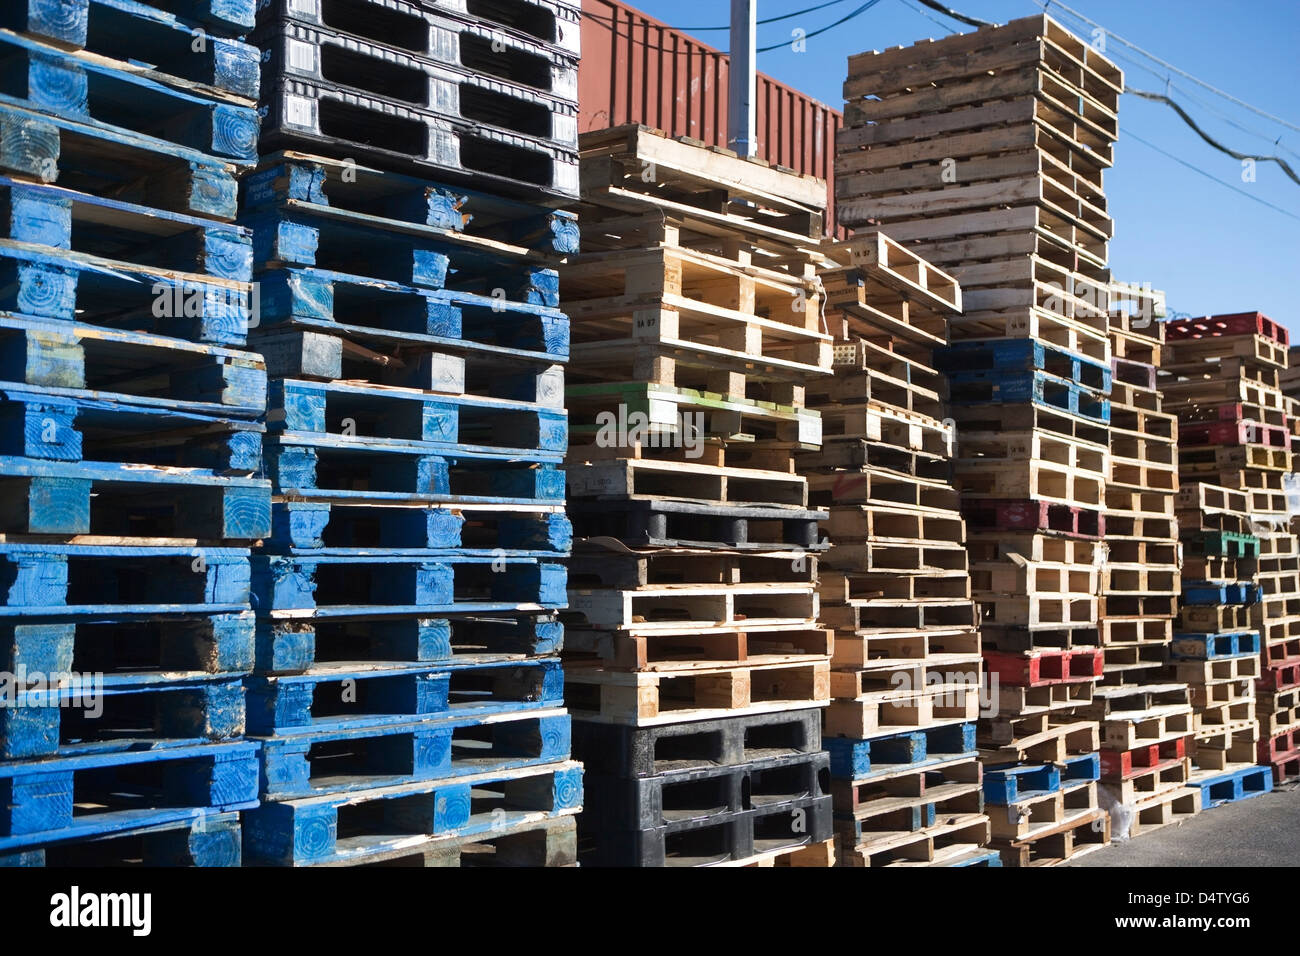 Pallets stacked together in yard - Stock Image